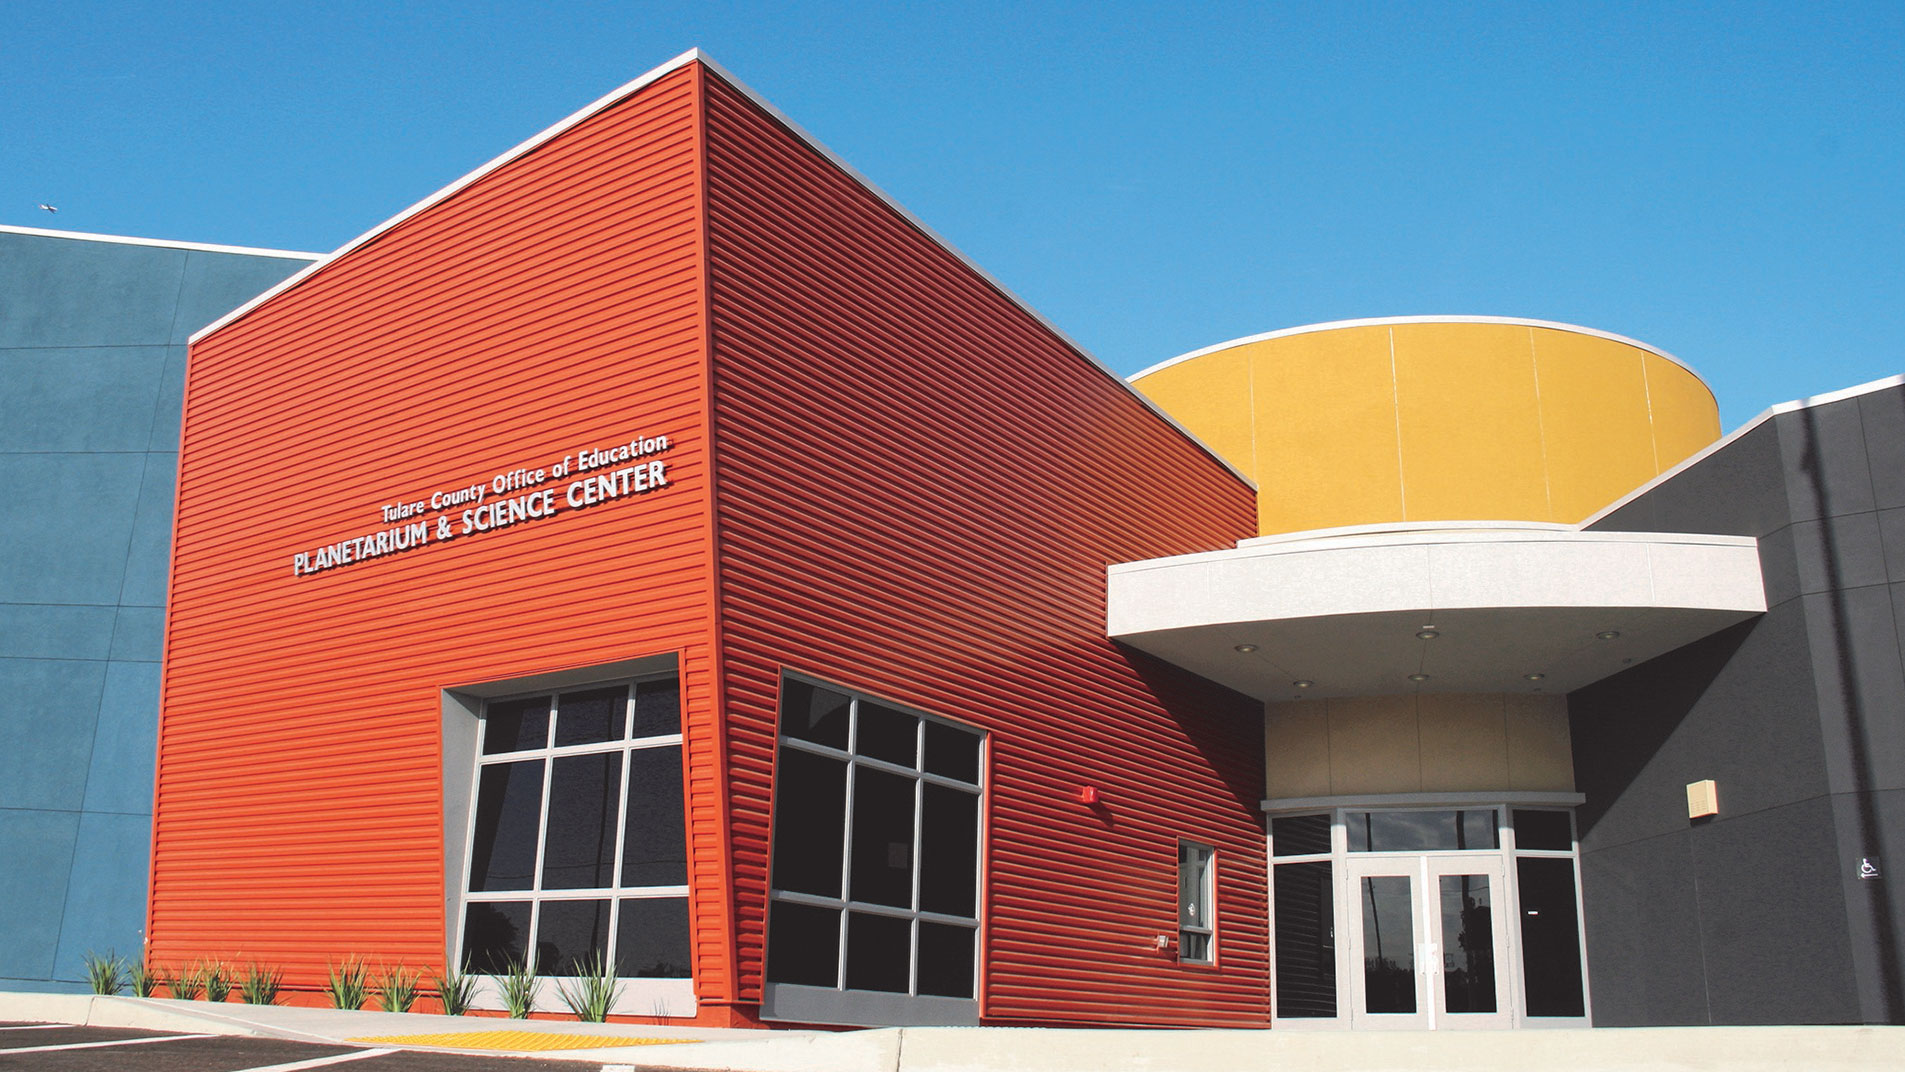 tulare-county-office-of-education-planetarium-and-science-center-1